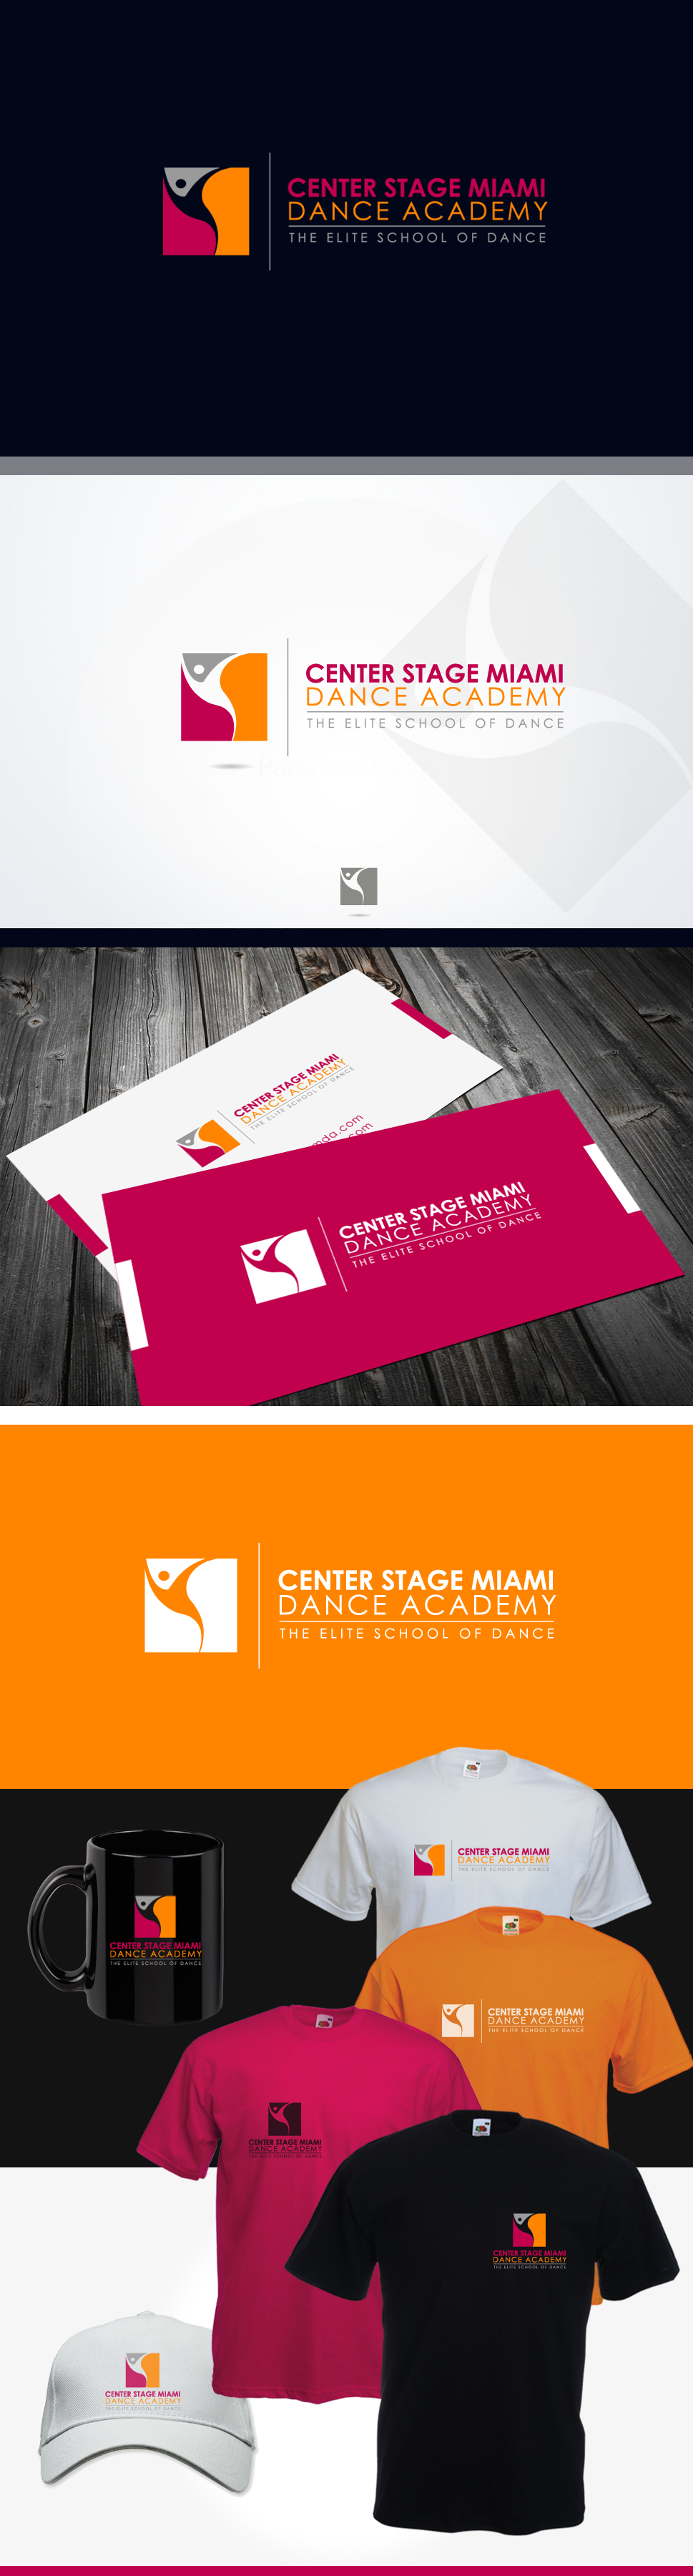 logo for Center Stage Miami Dance Academy